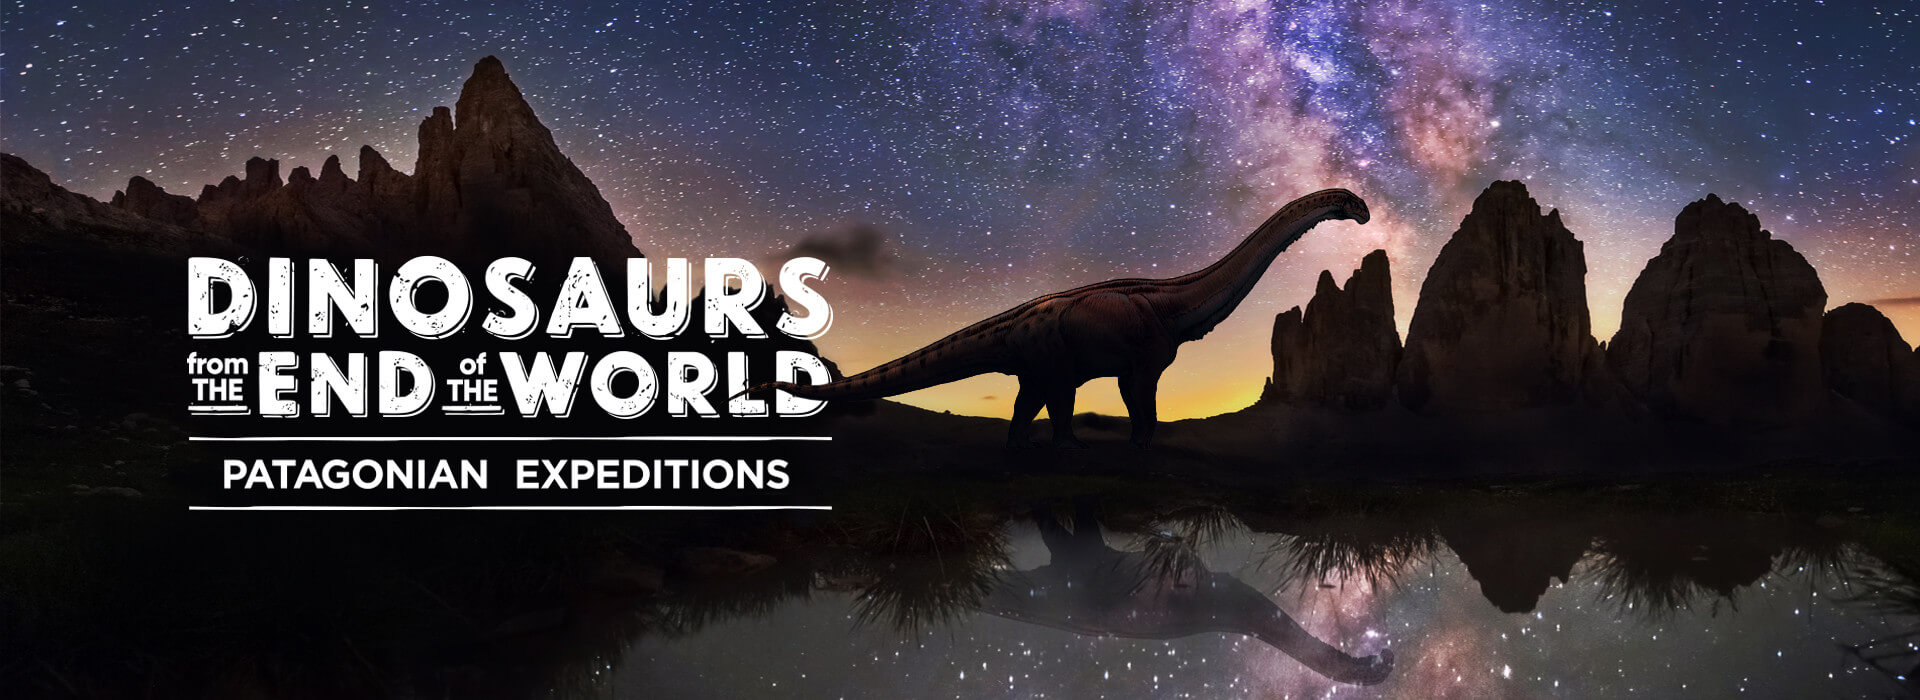 Dinosaurs from the end of the world. Patagonian expeditions